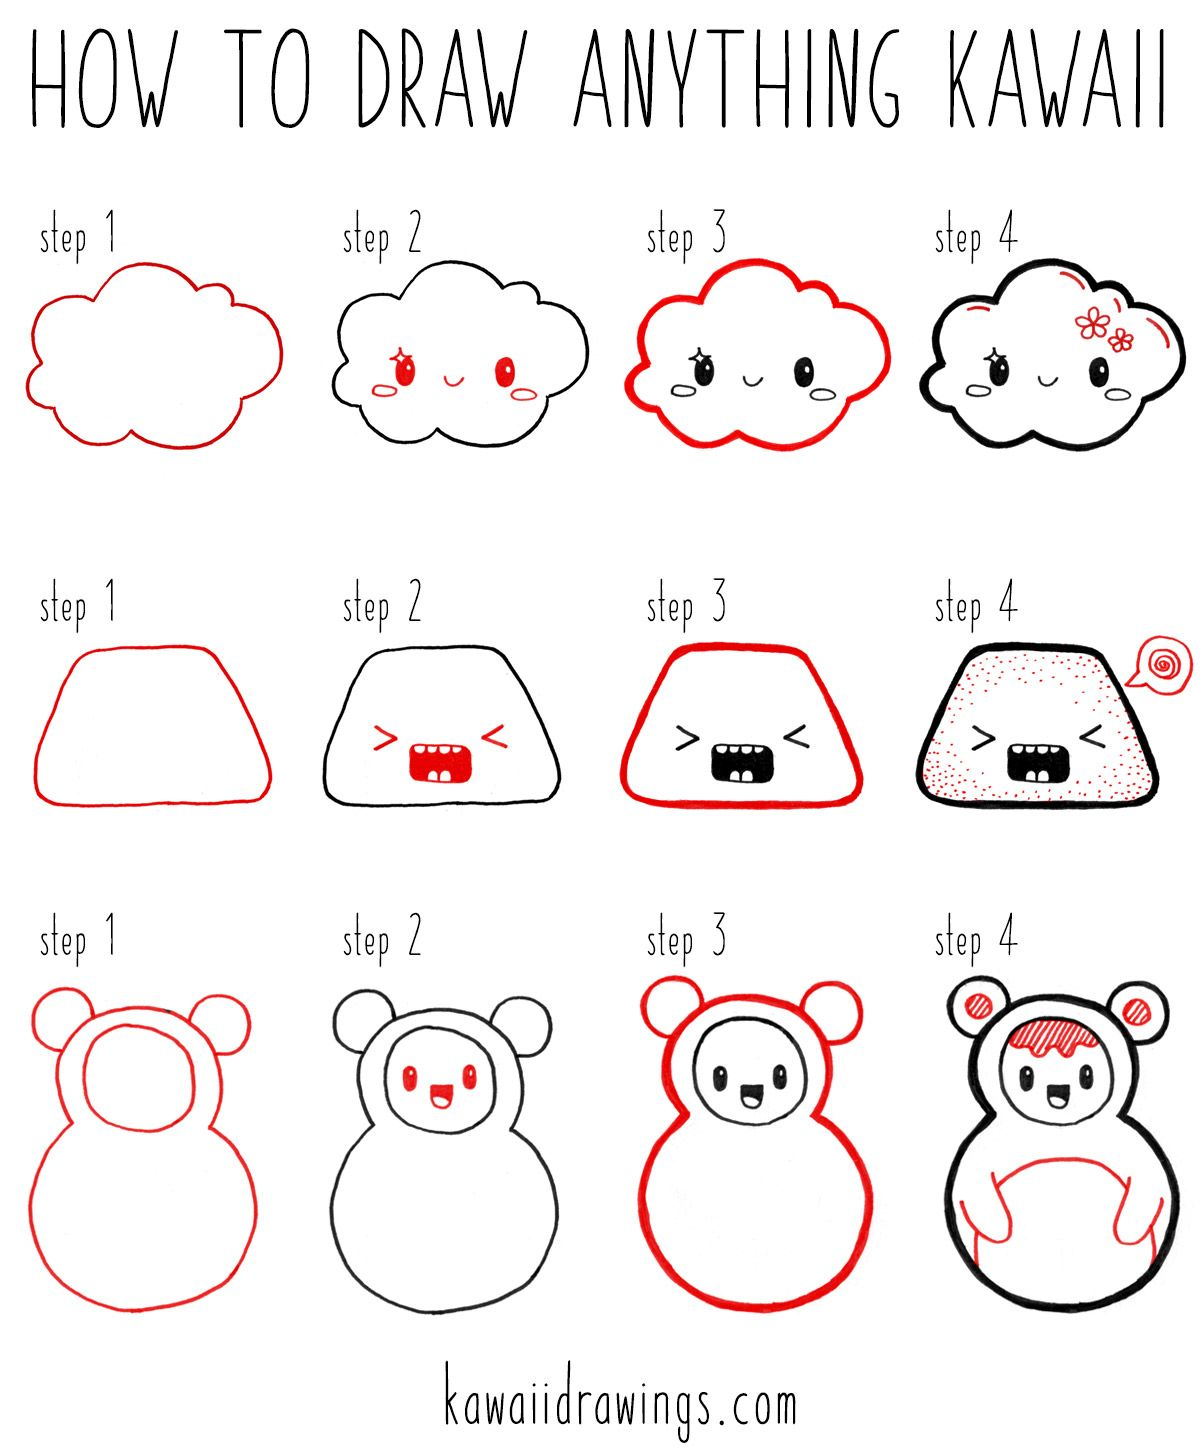 Four step formula for designing your own kawaii characters it works every time 1 draw an outline 2 put a face on it 3 thicken the outline